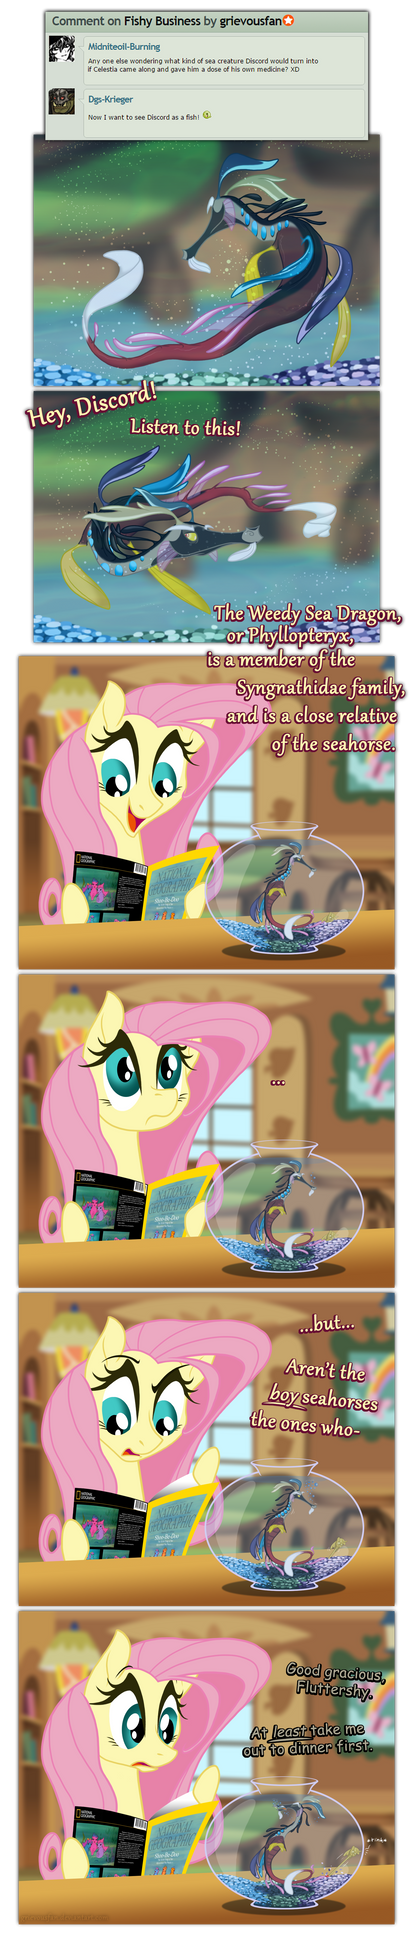 Not So Swimmingly by grievousfan